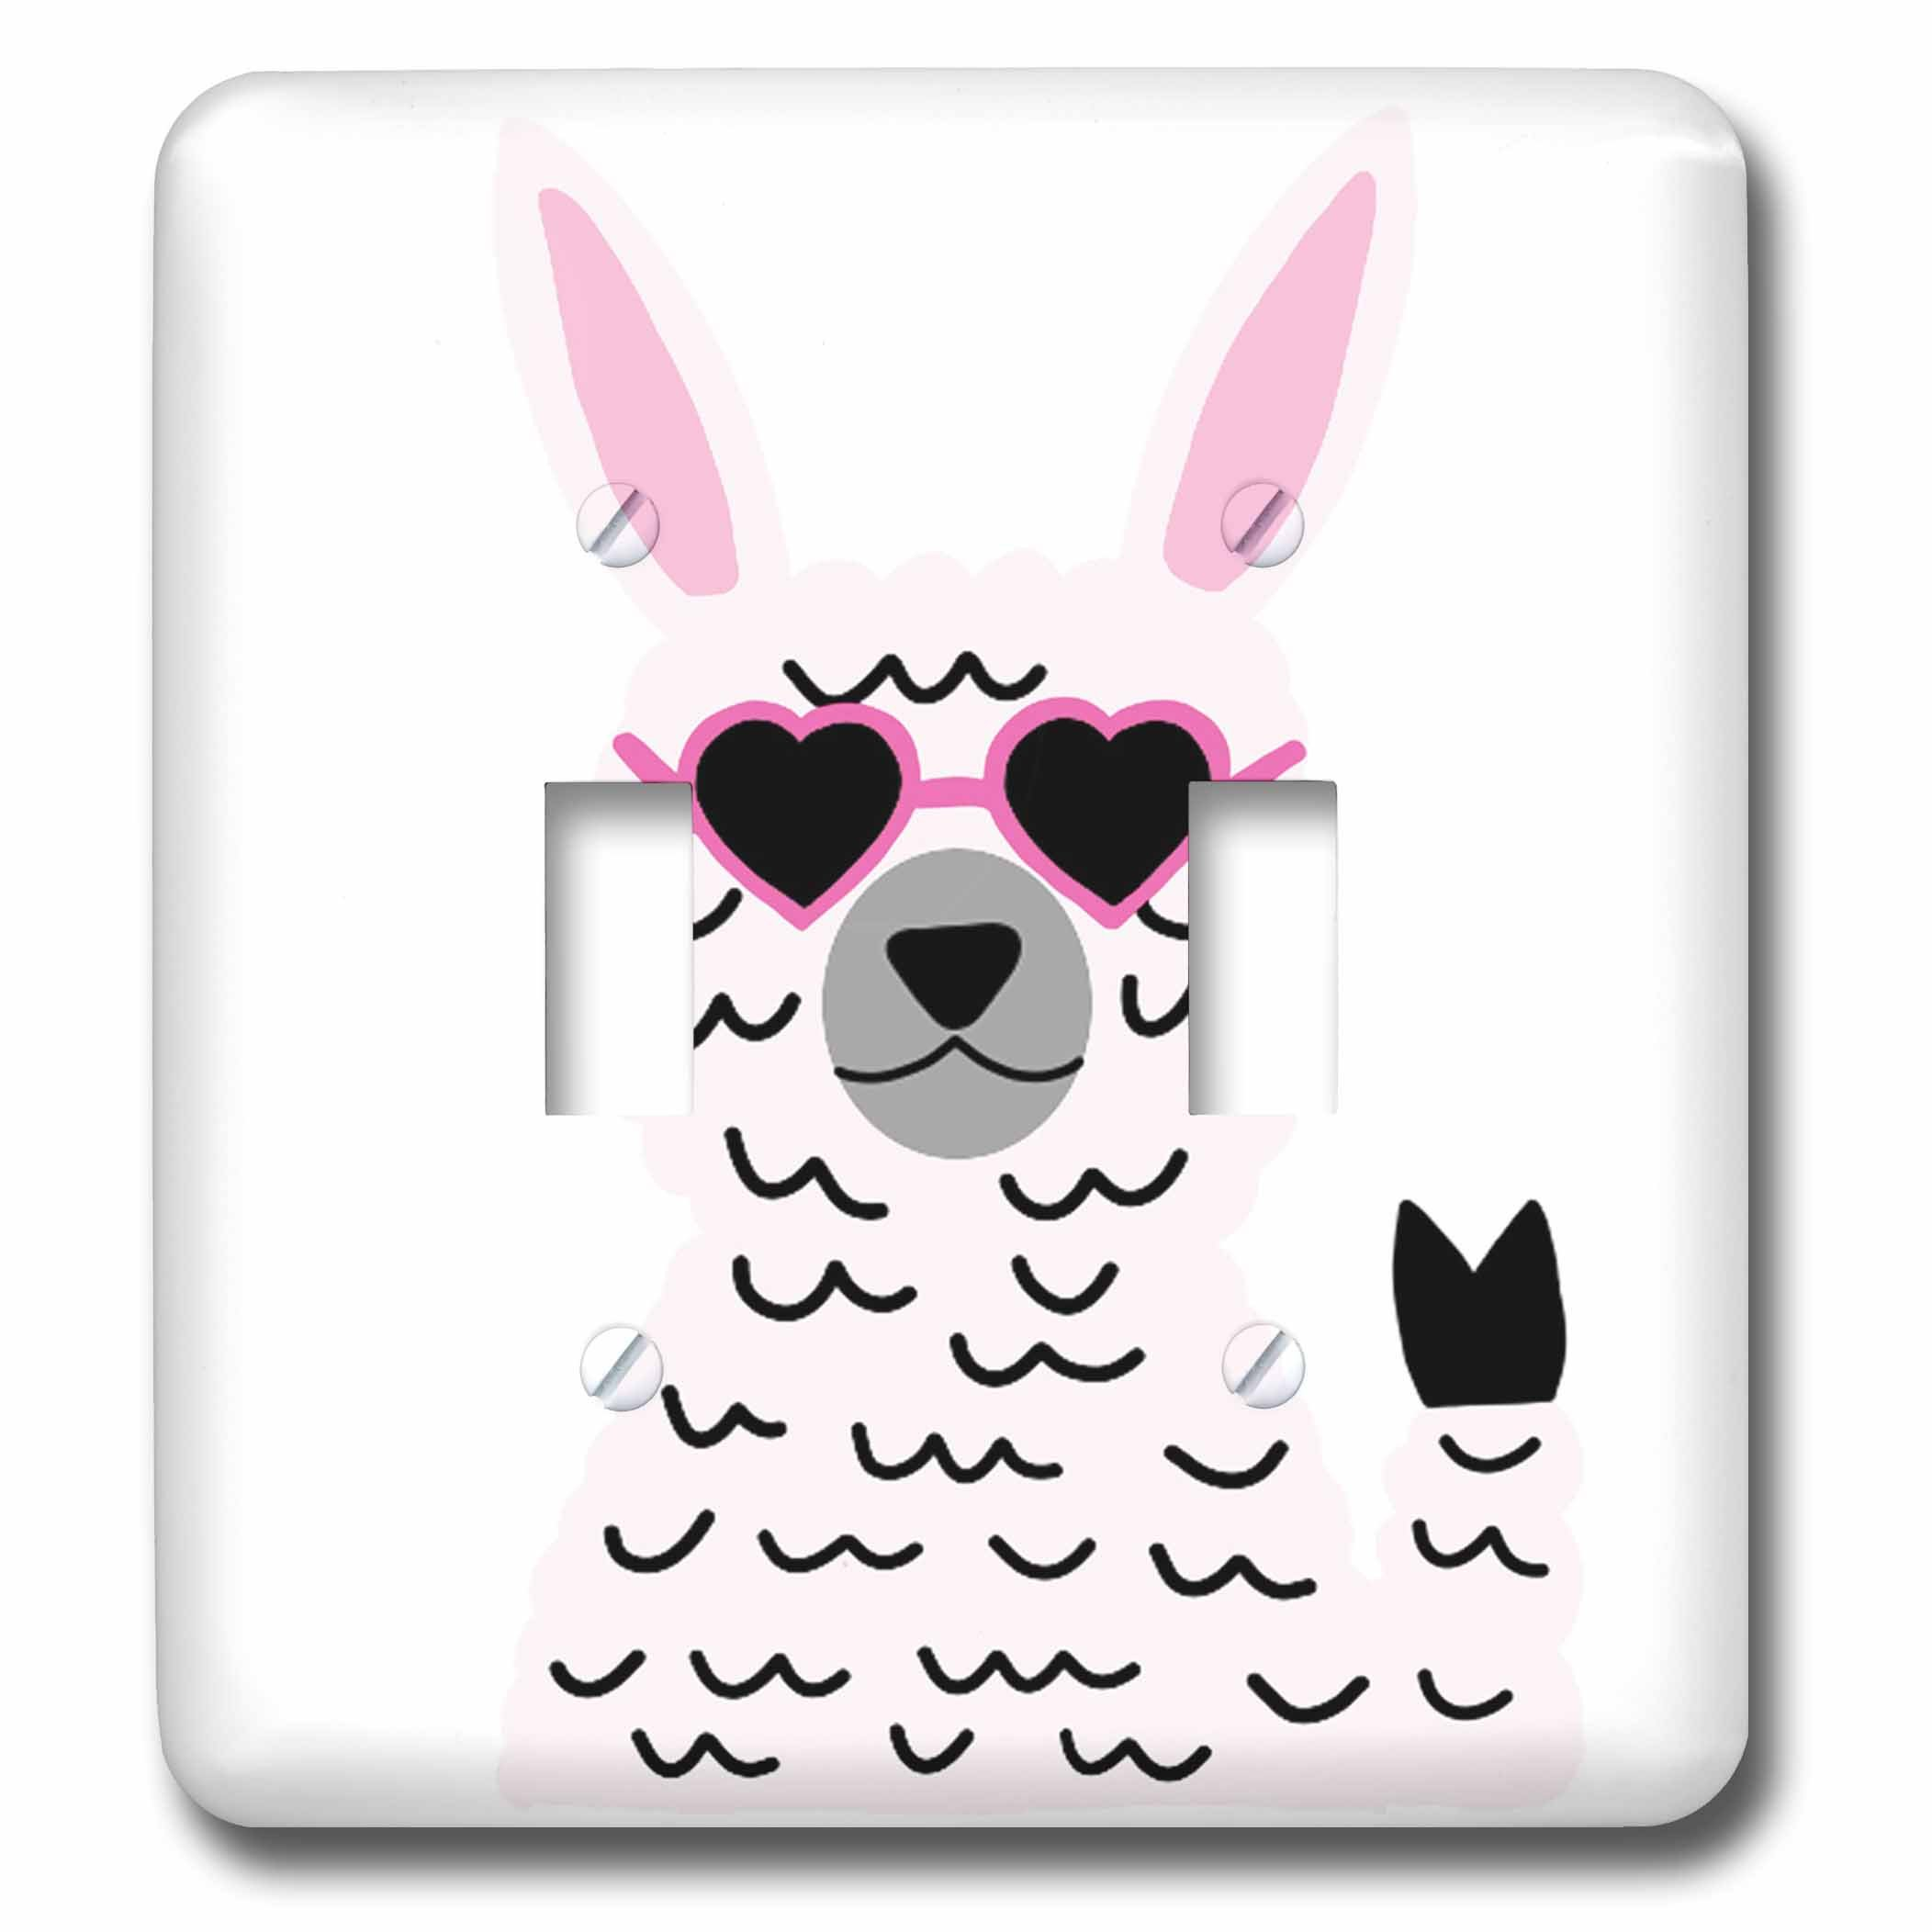 3dRose AllSouthernDesignTees - Zoo Animals - Cool fun hippie llama holding up peace sign and wearing heart glasses - Light Switch Covers - double toggle switch (lsp_280221_2)